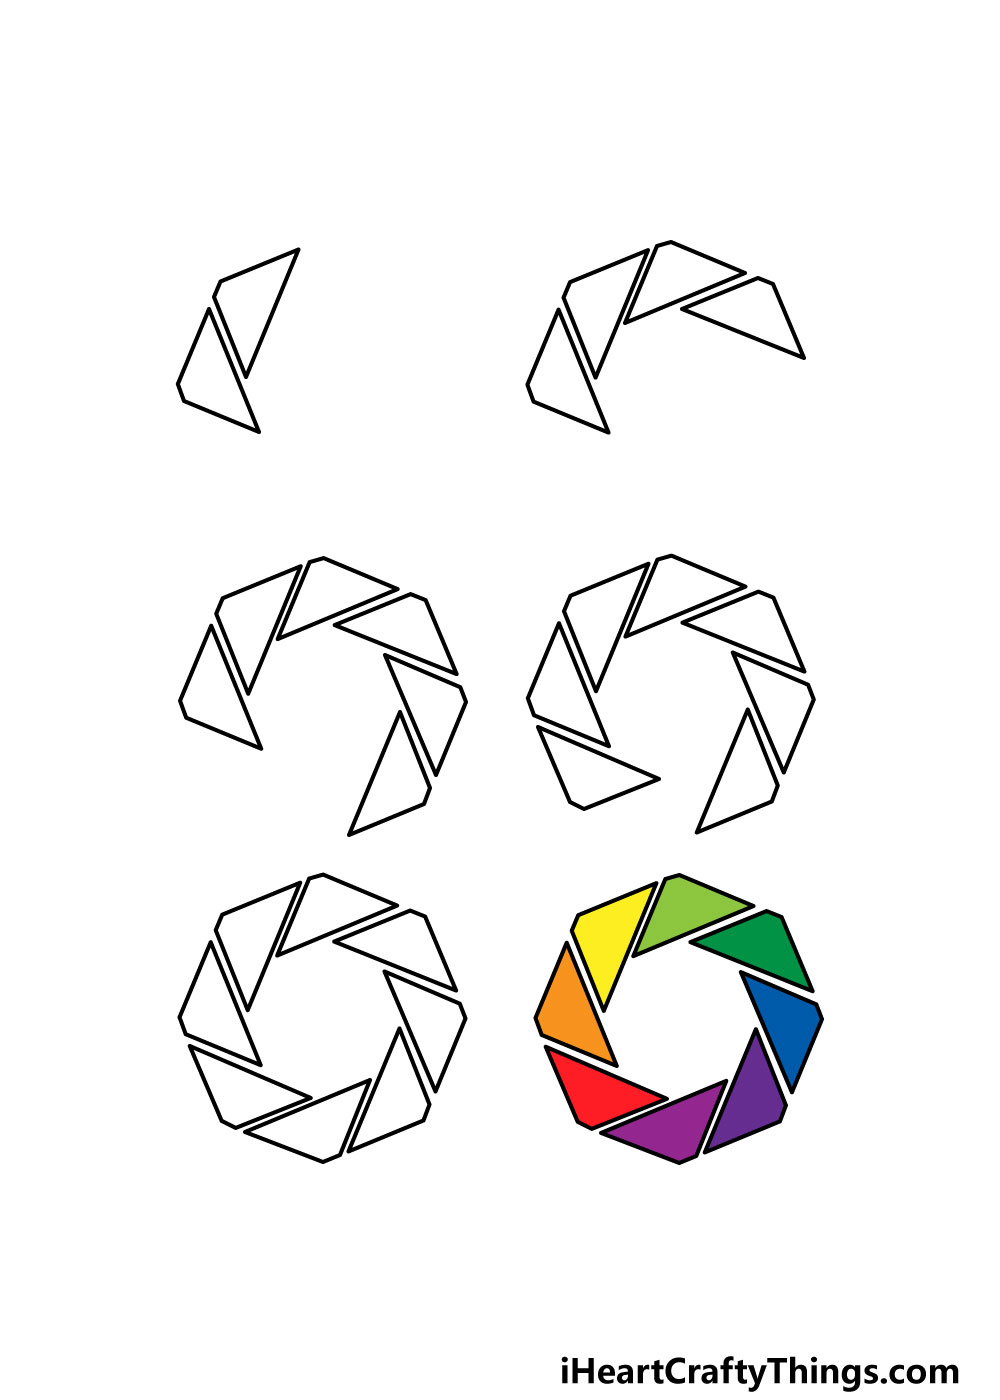 how to draw an octagon in 6 steps